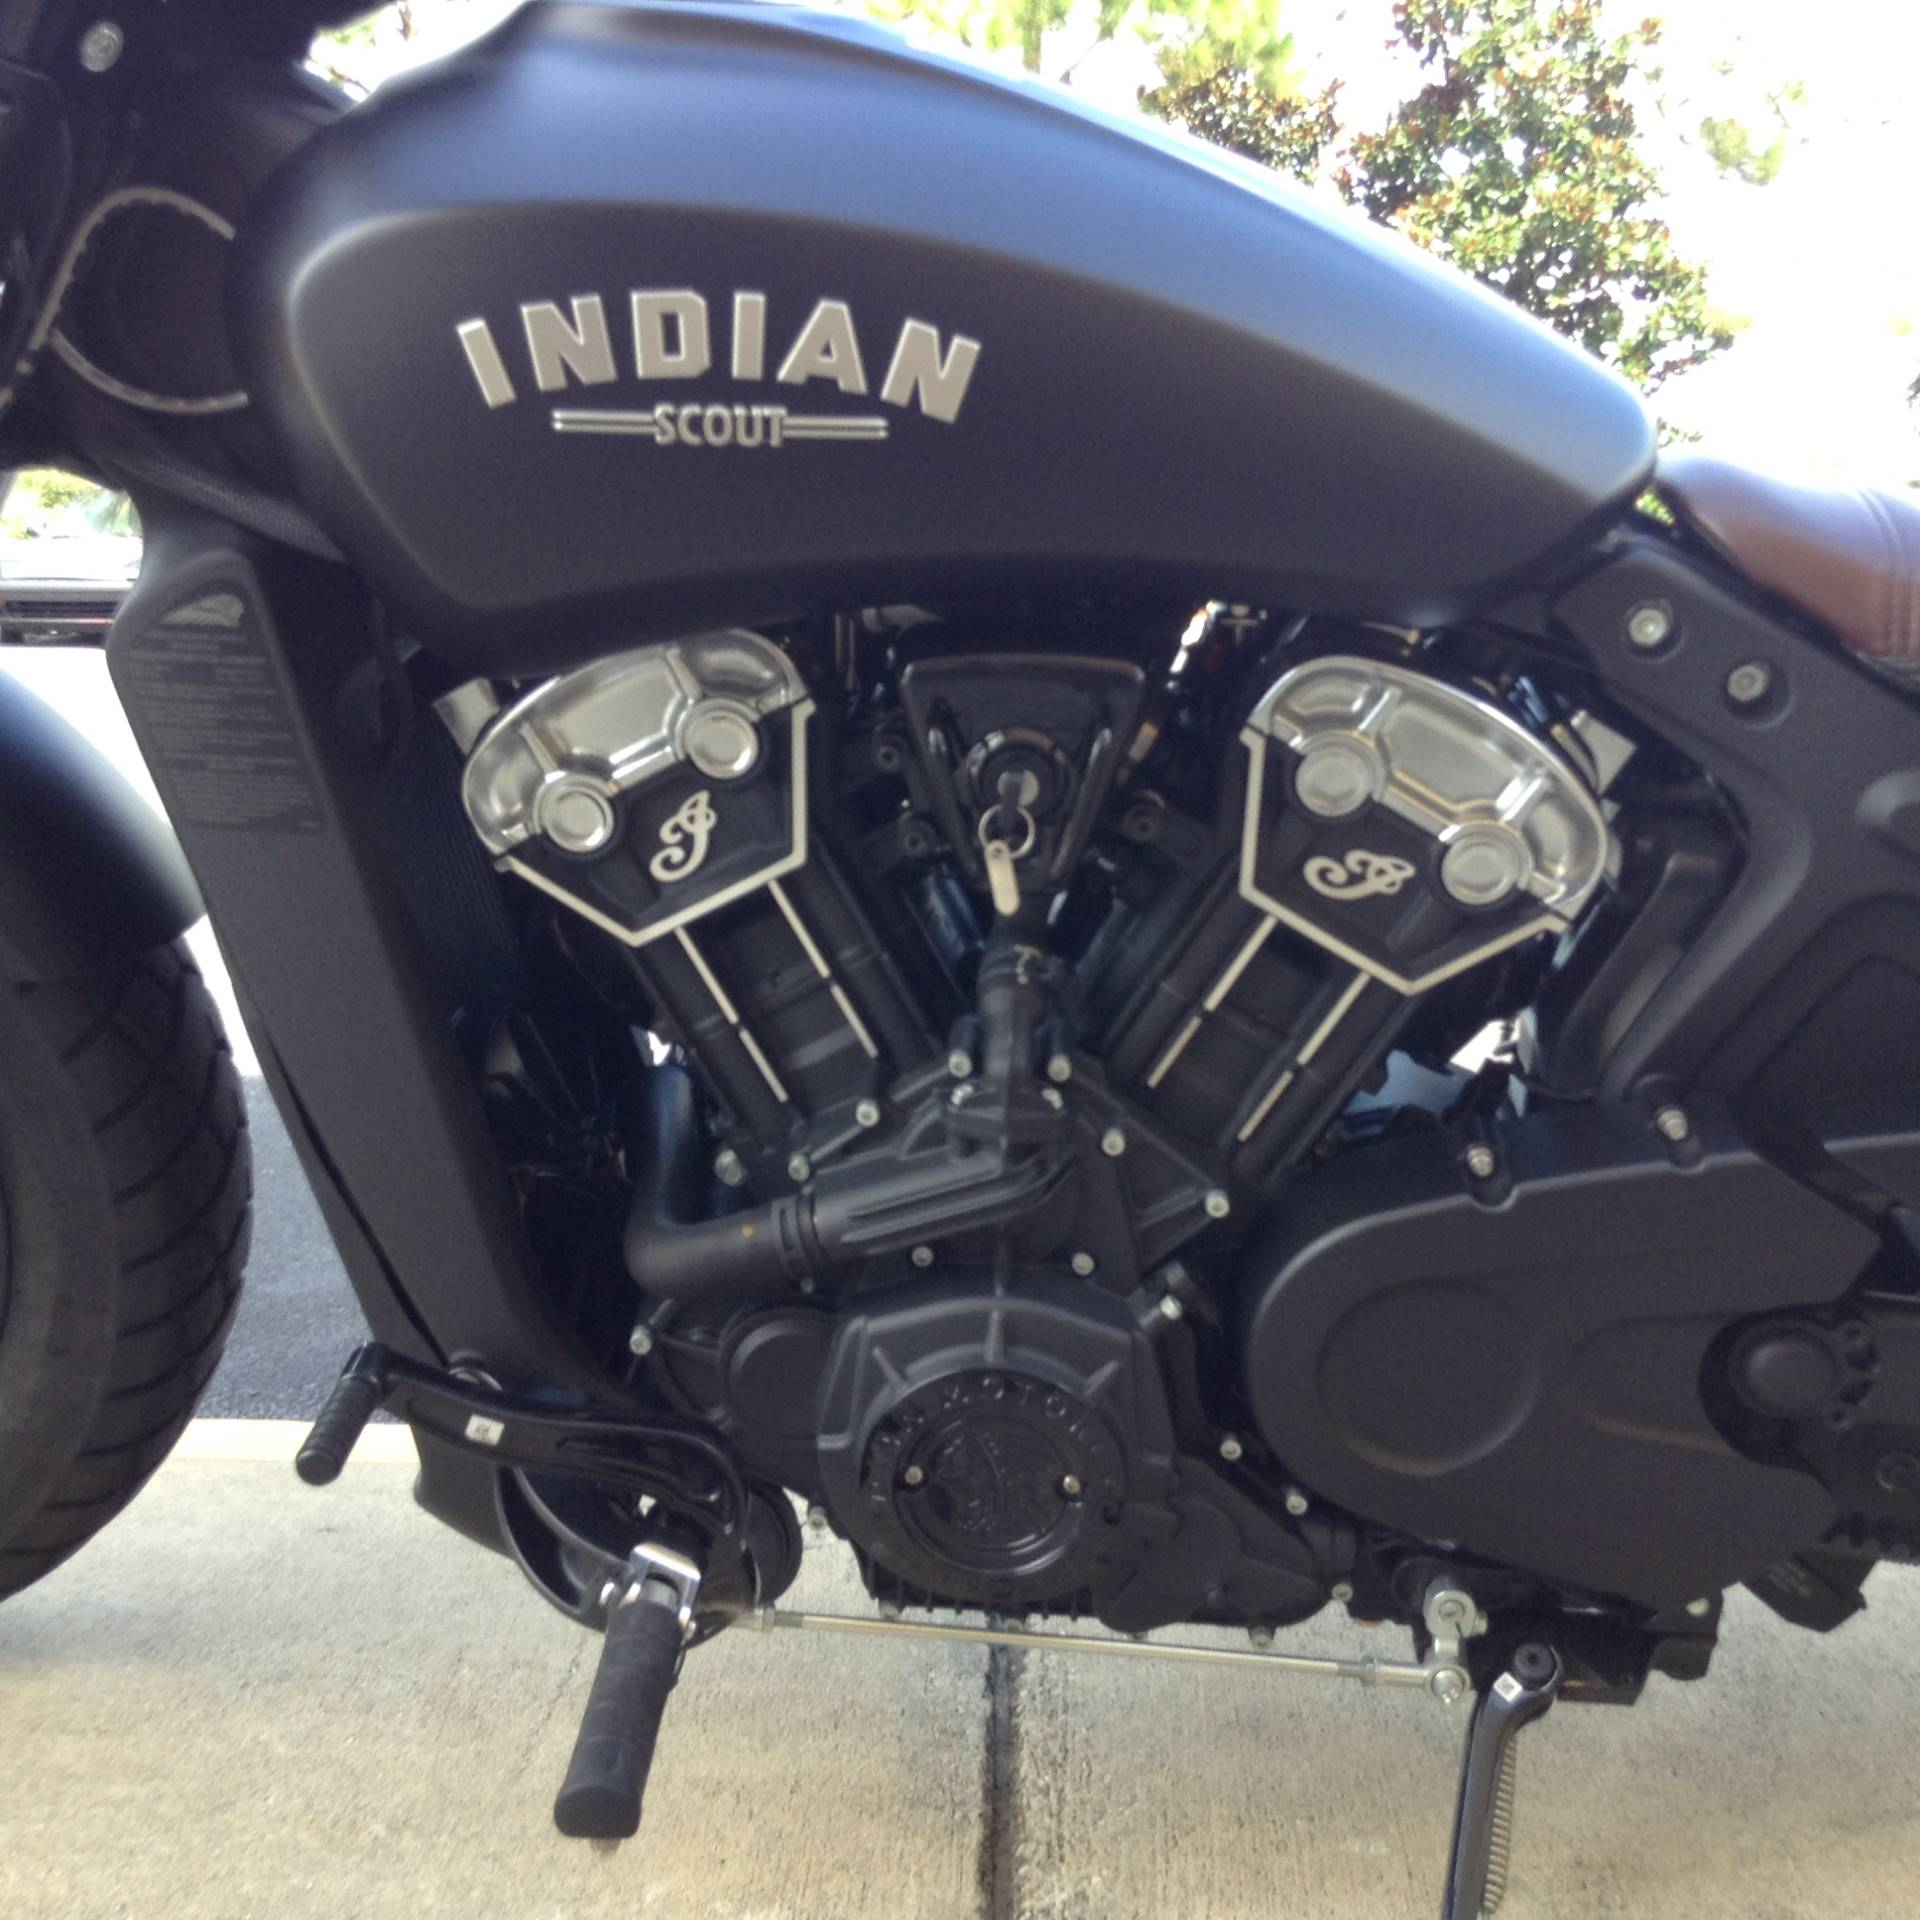 2019 Indian SCOUT BOBBER in Panama City Beach, Florida - Photo 9